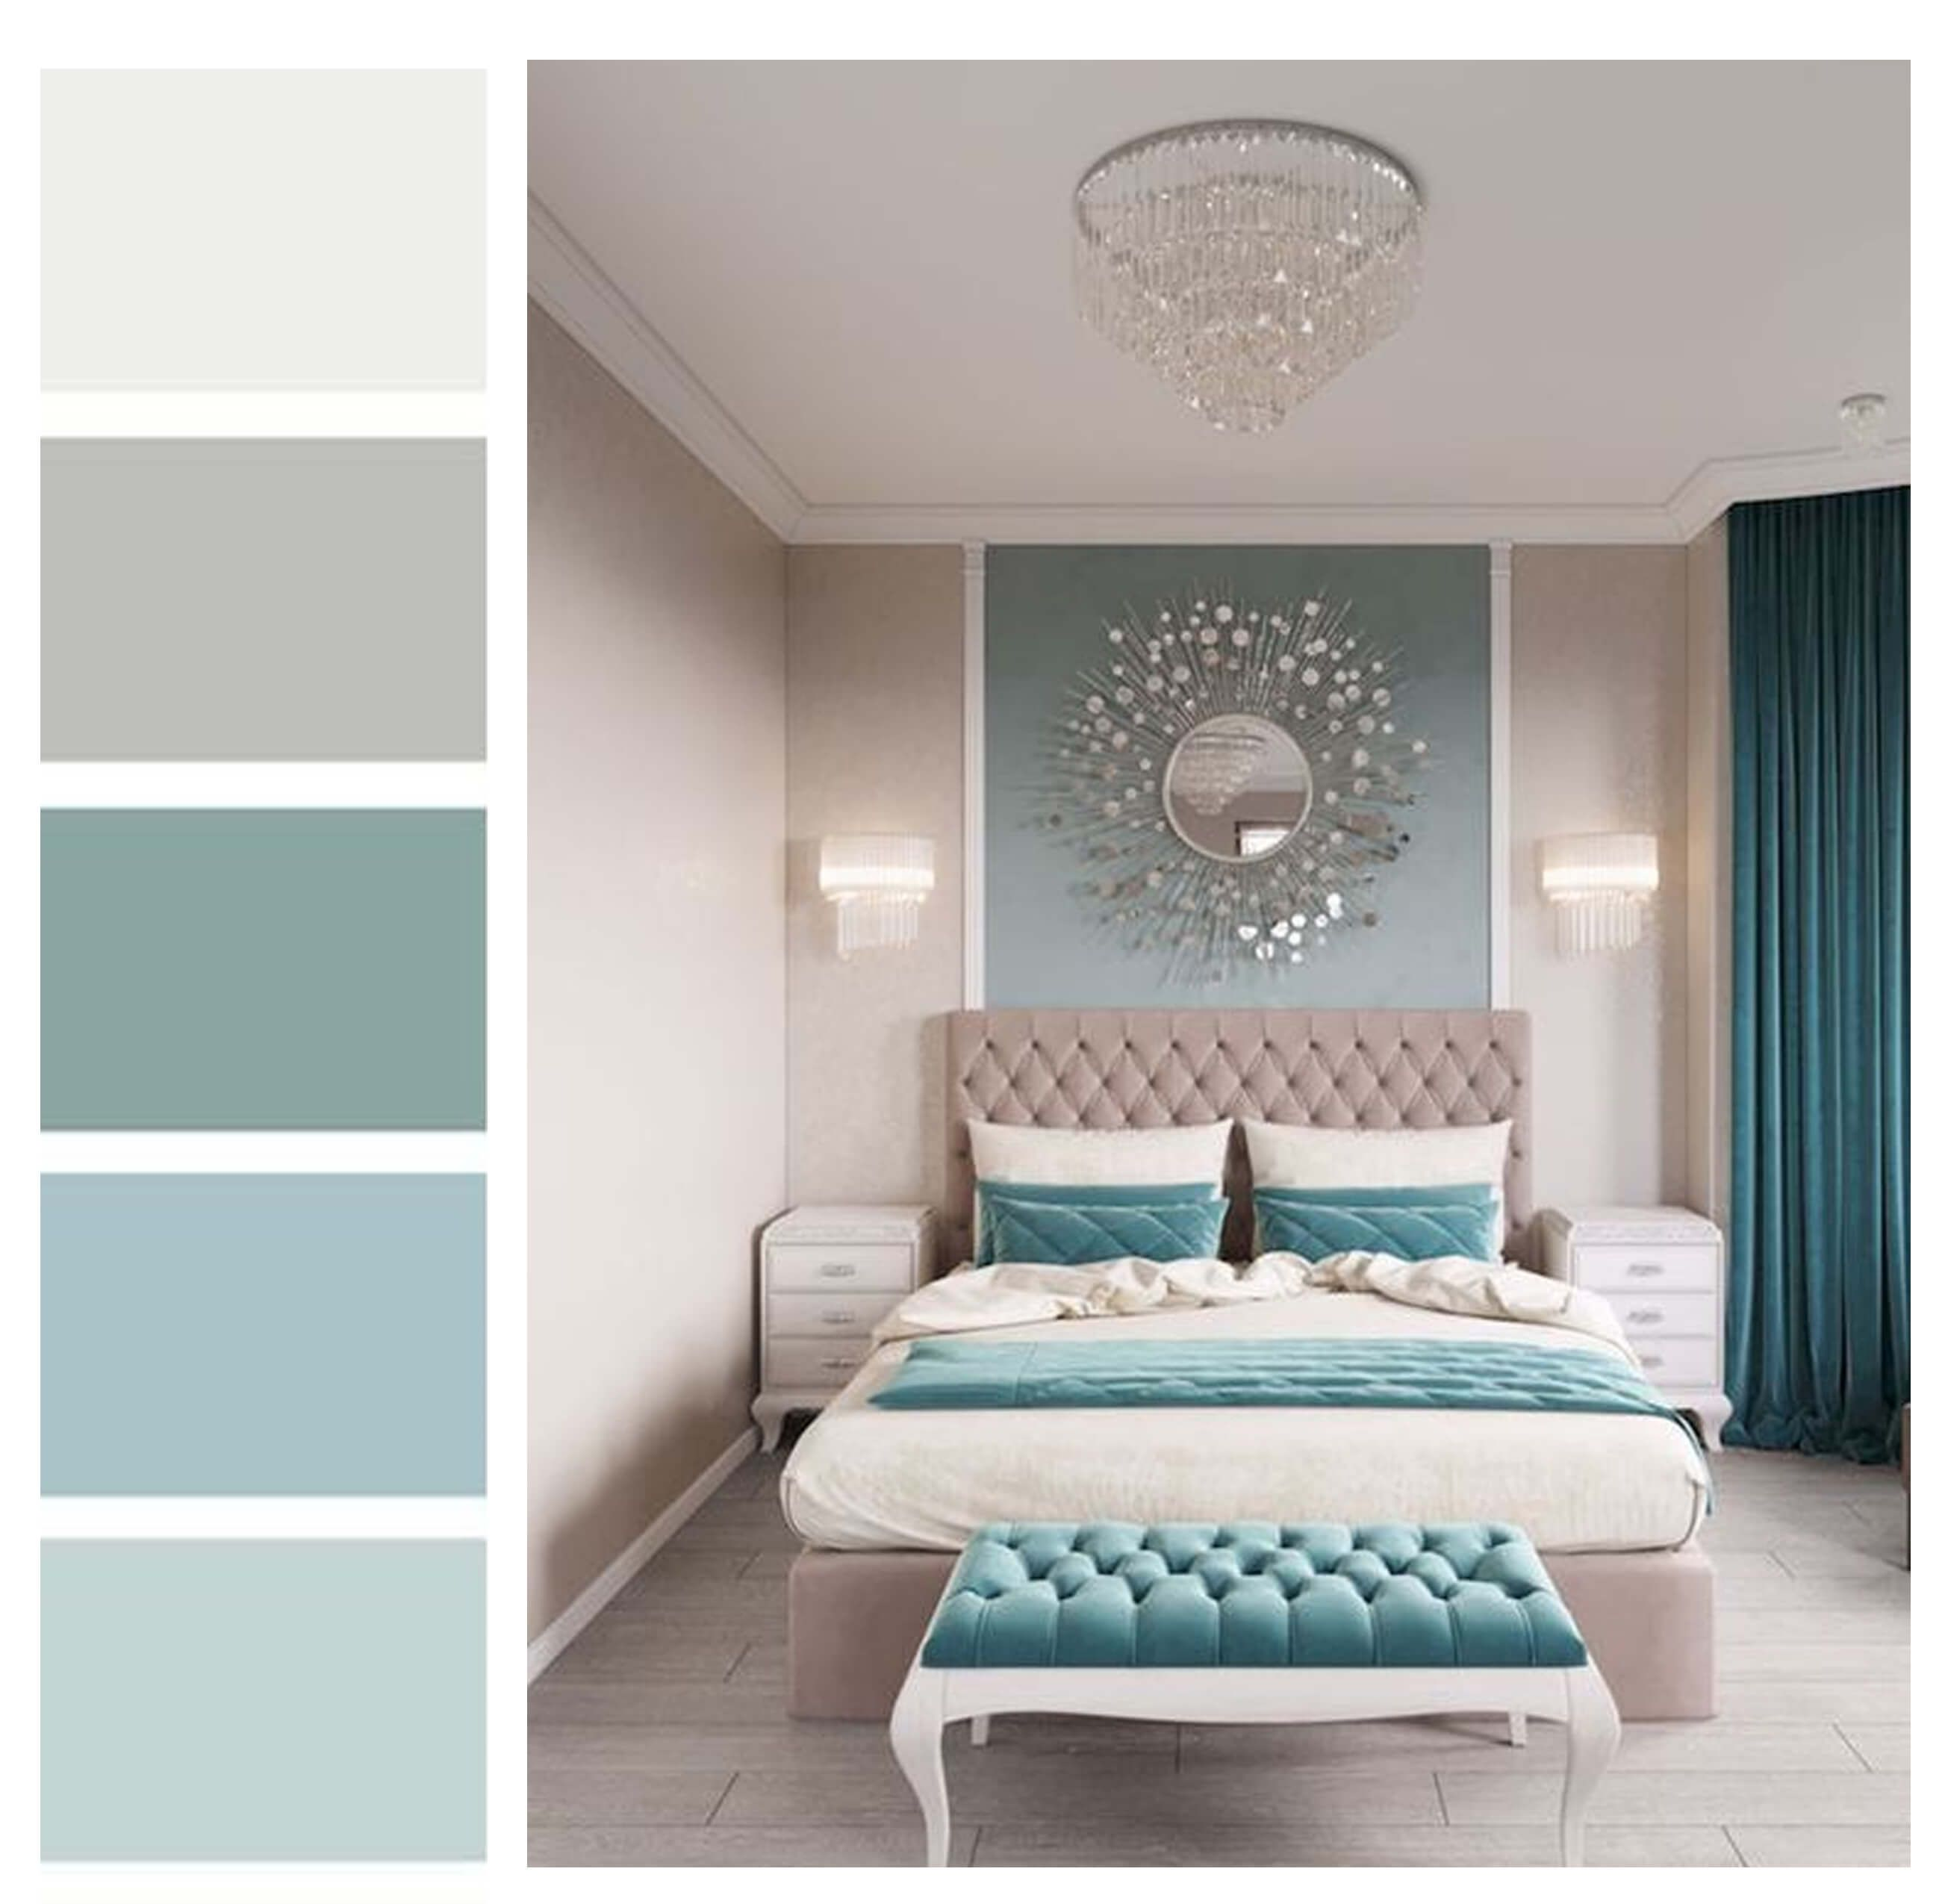 Paint Color Selection in 2020 Bedroom wall colors